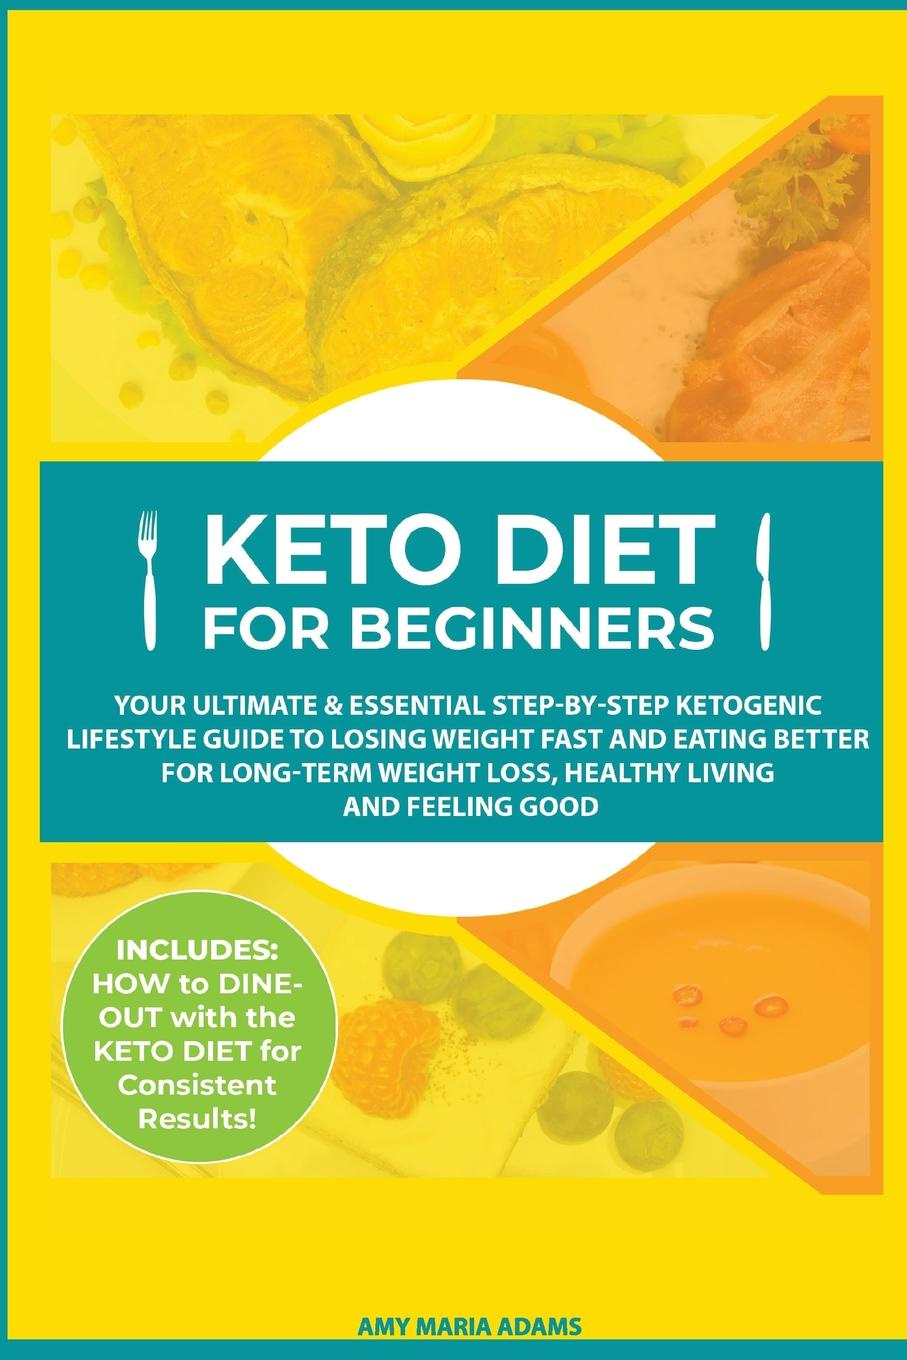 Keto Diet for Beginners. Your Ultimate & Essential Step-by-Step Ketogenic Lifestyle Guide to Losing Weight Fast and Eating Better for Long-Term Weight Loss, Healthy Living and Feeling Good